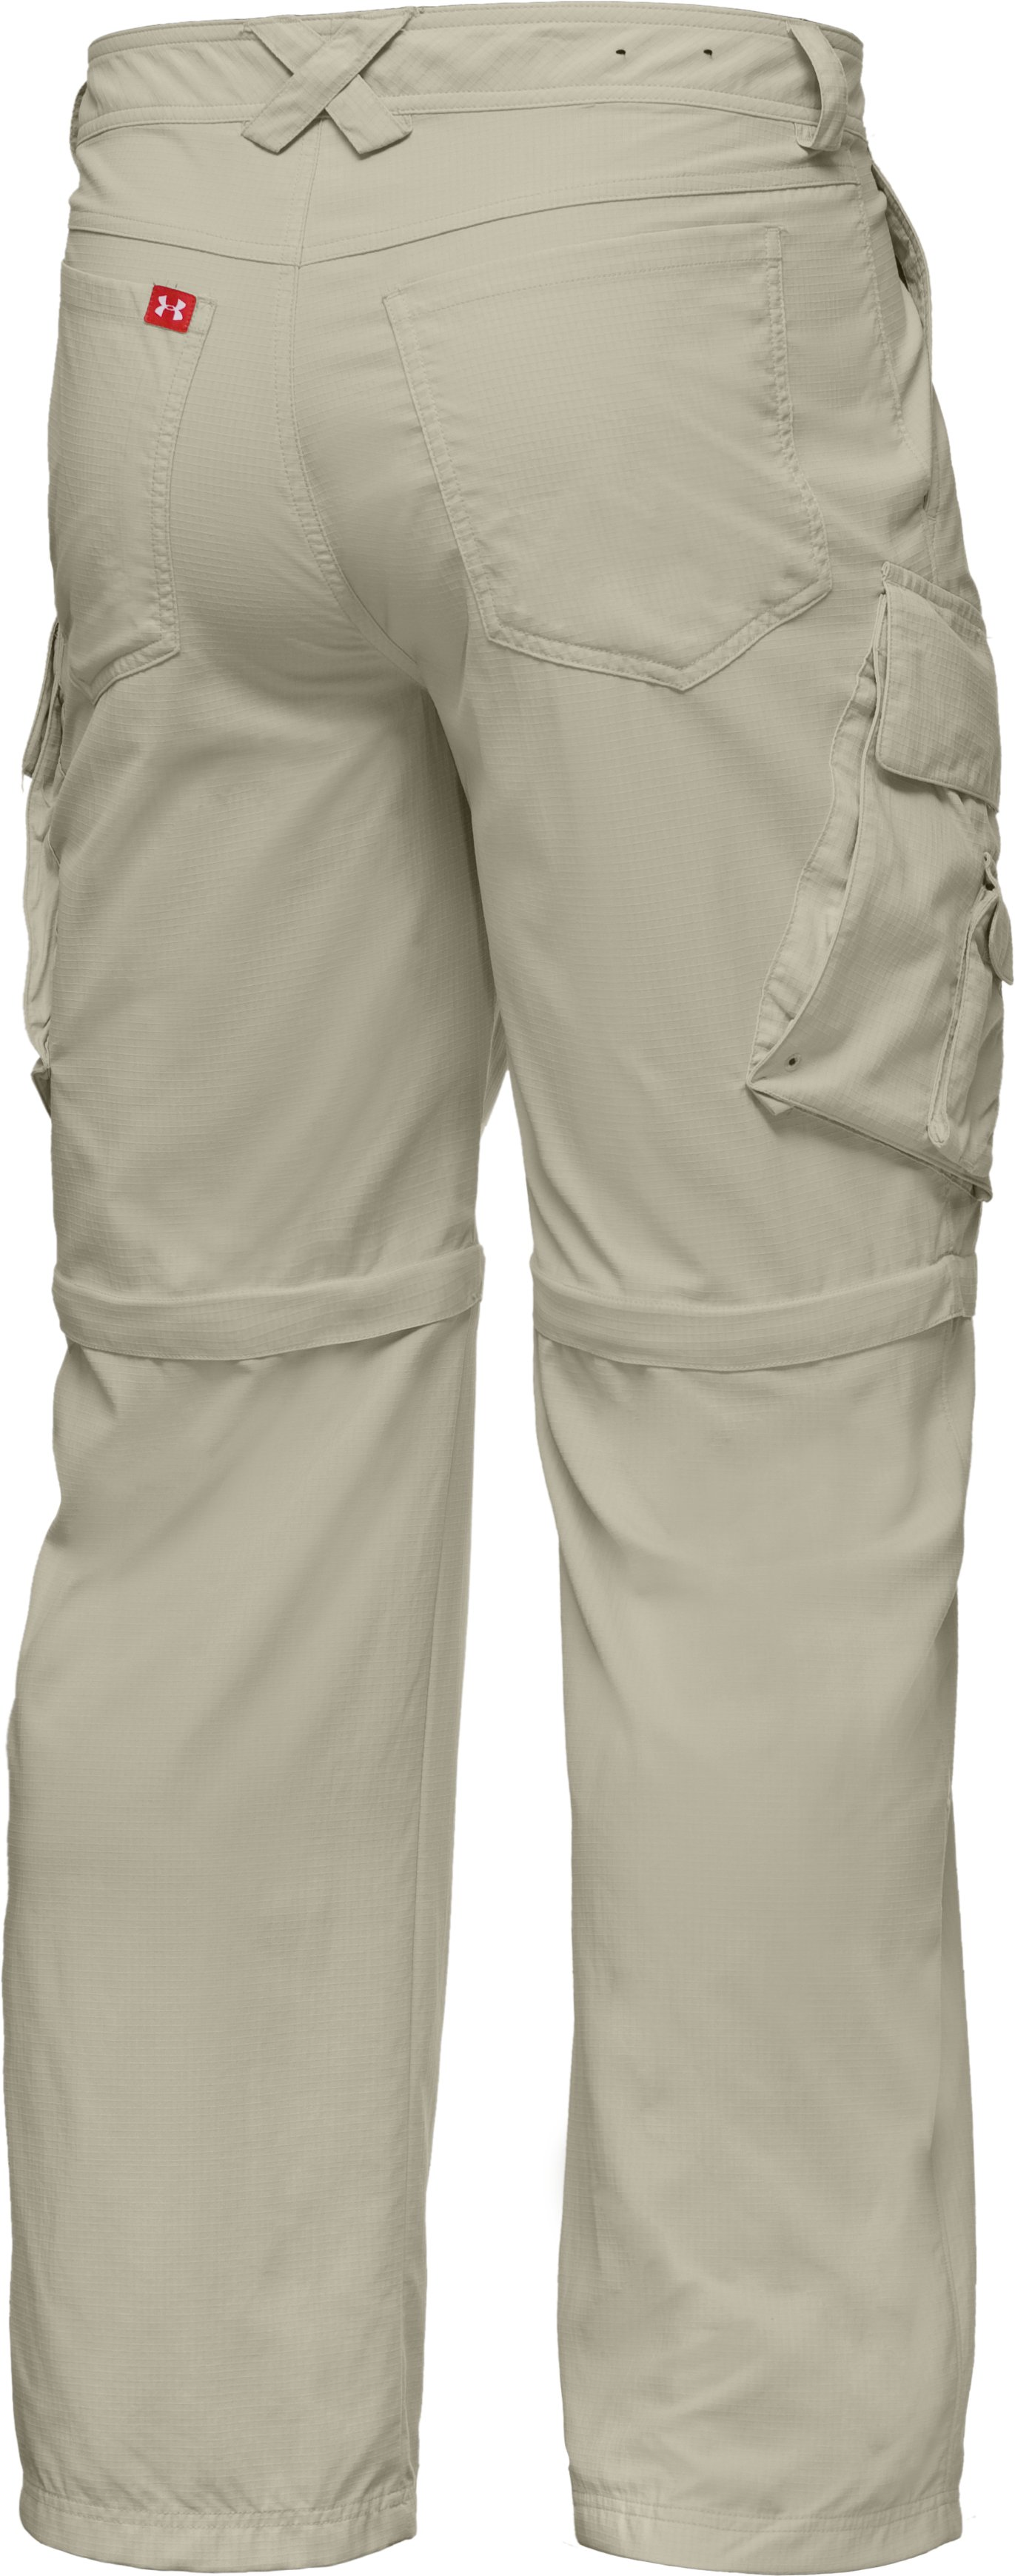 Men's UA Guide Zip-Off Trail Pants III, Desert Sand